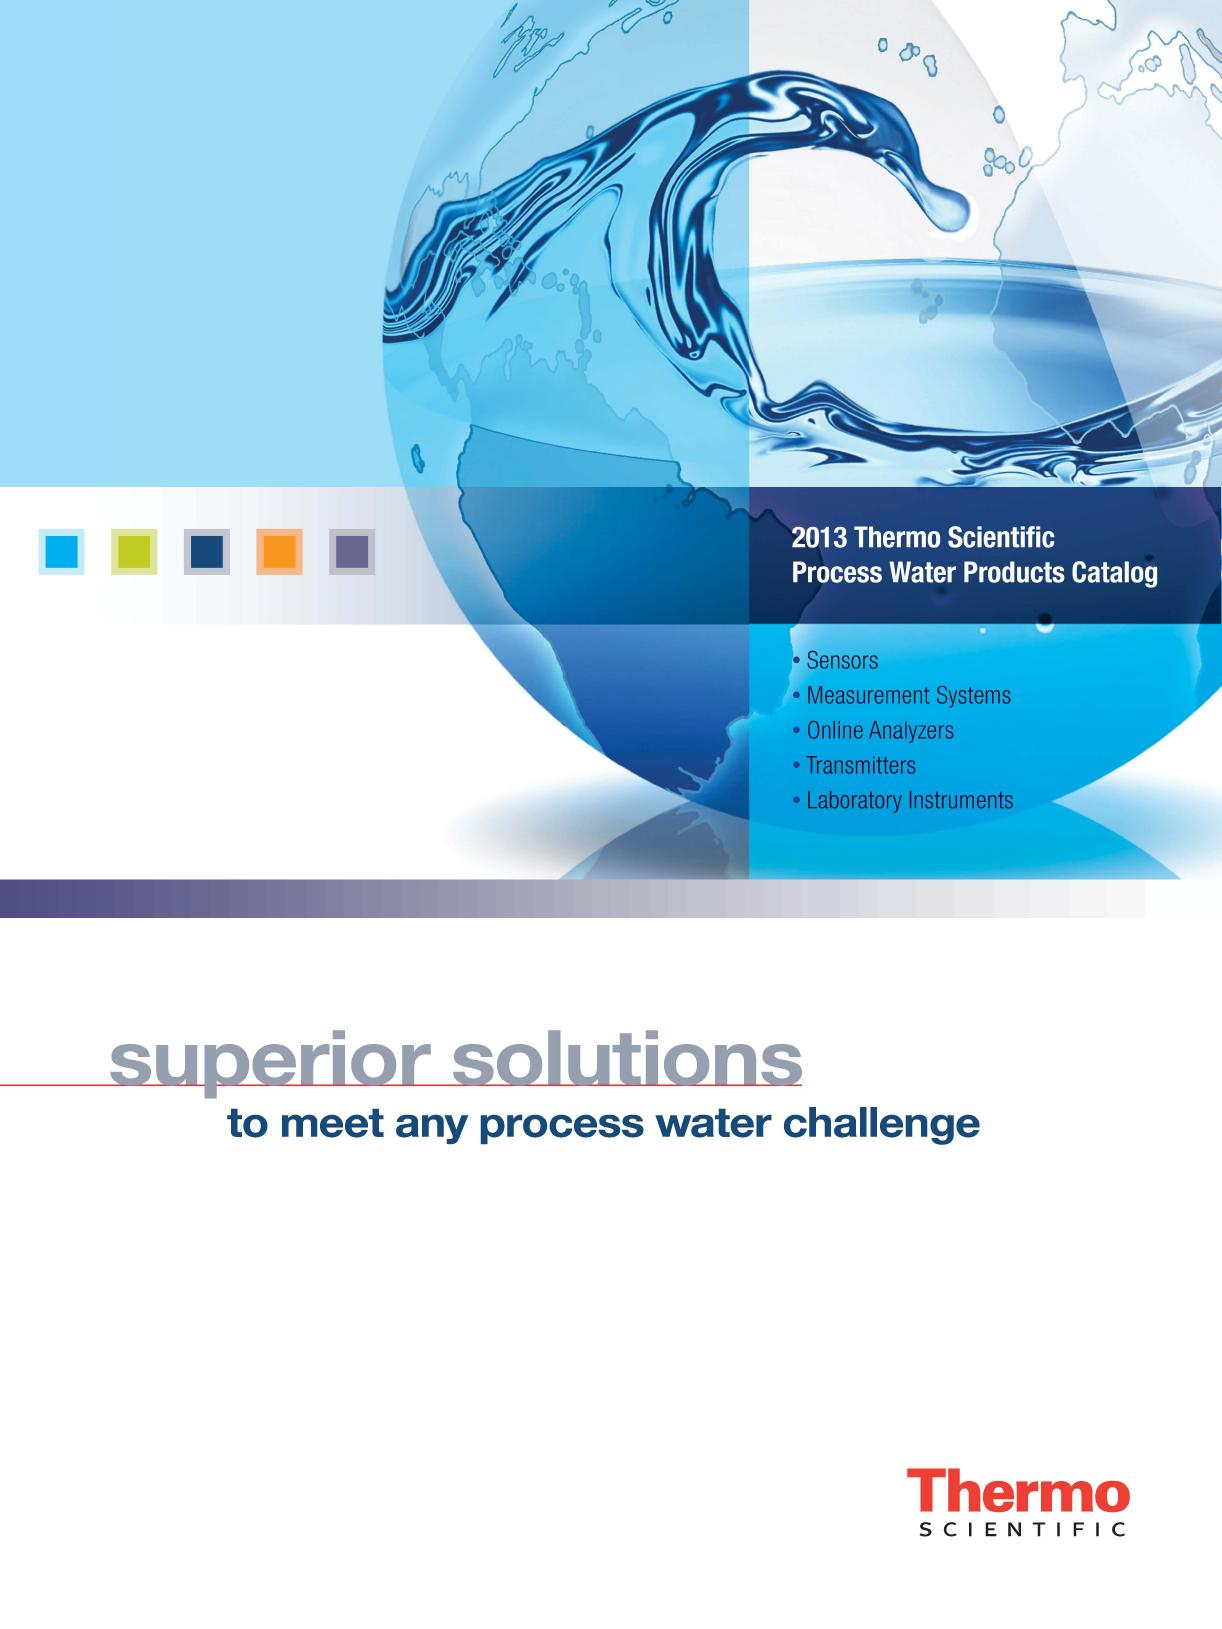 Thermo Scientific Process Water Products